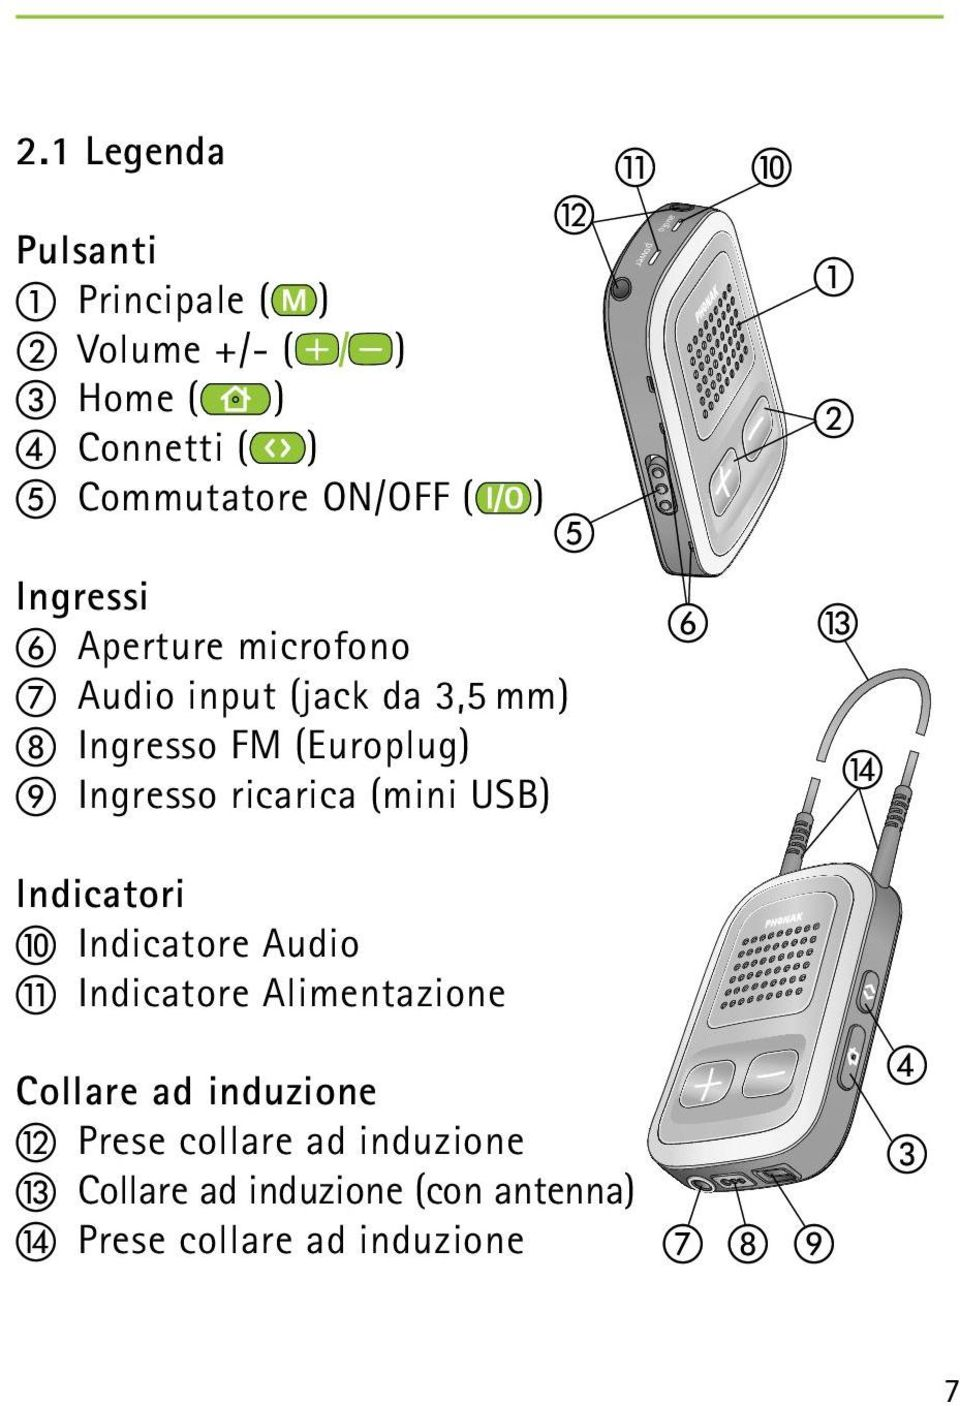 (mini USB) l e k power audio f j a b m n Indicatori j Indicatore Audio k Indicatore Alimentazione Collare ad